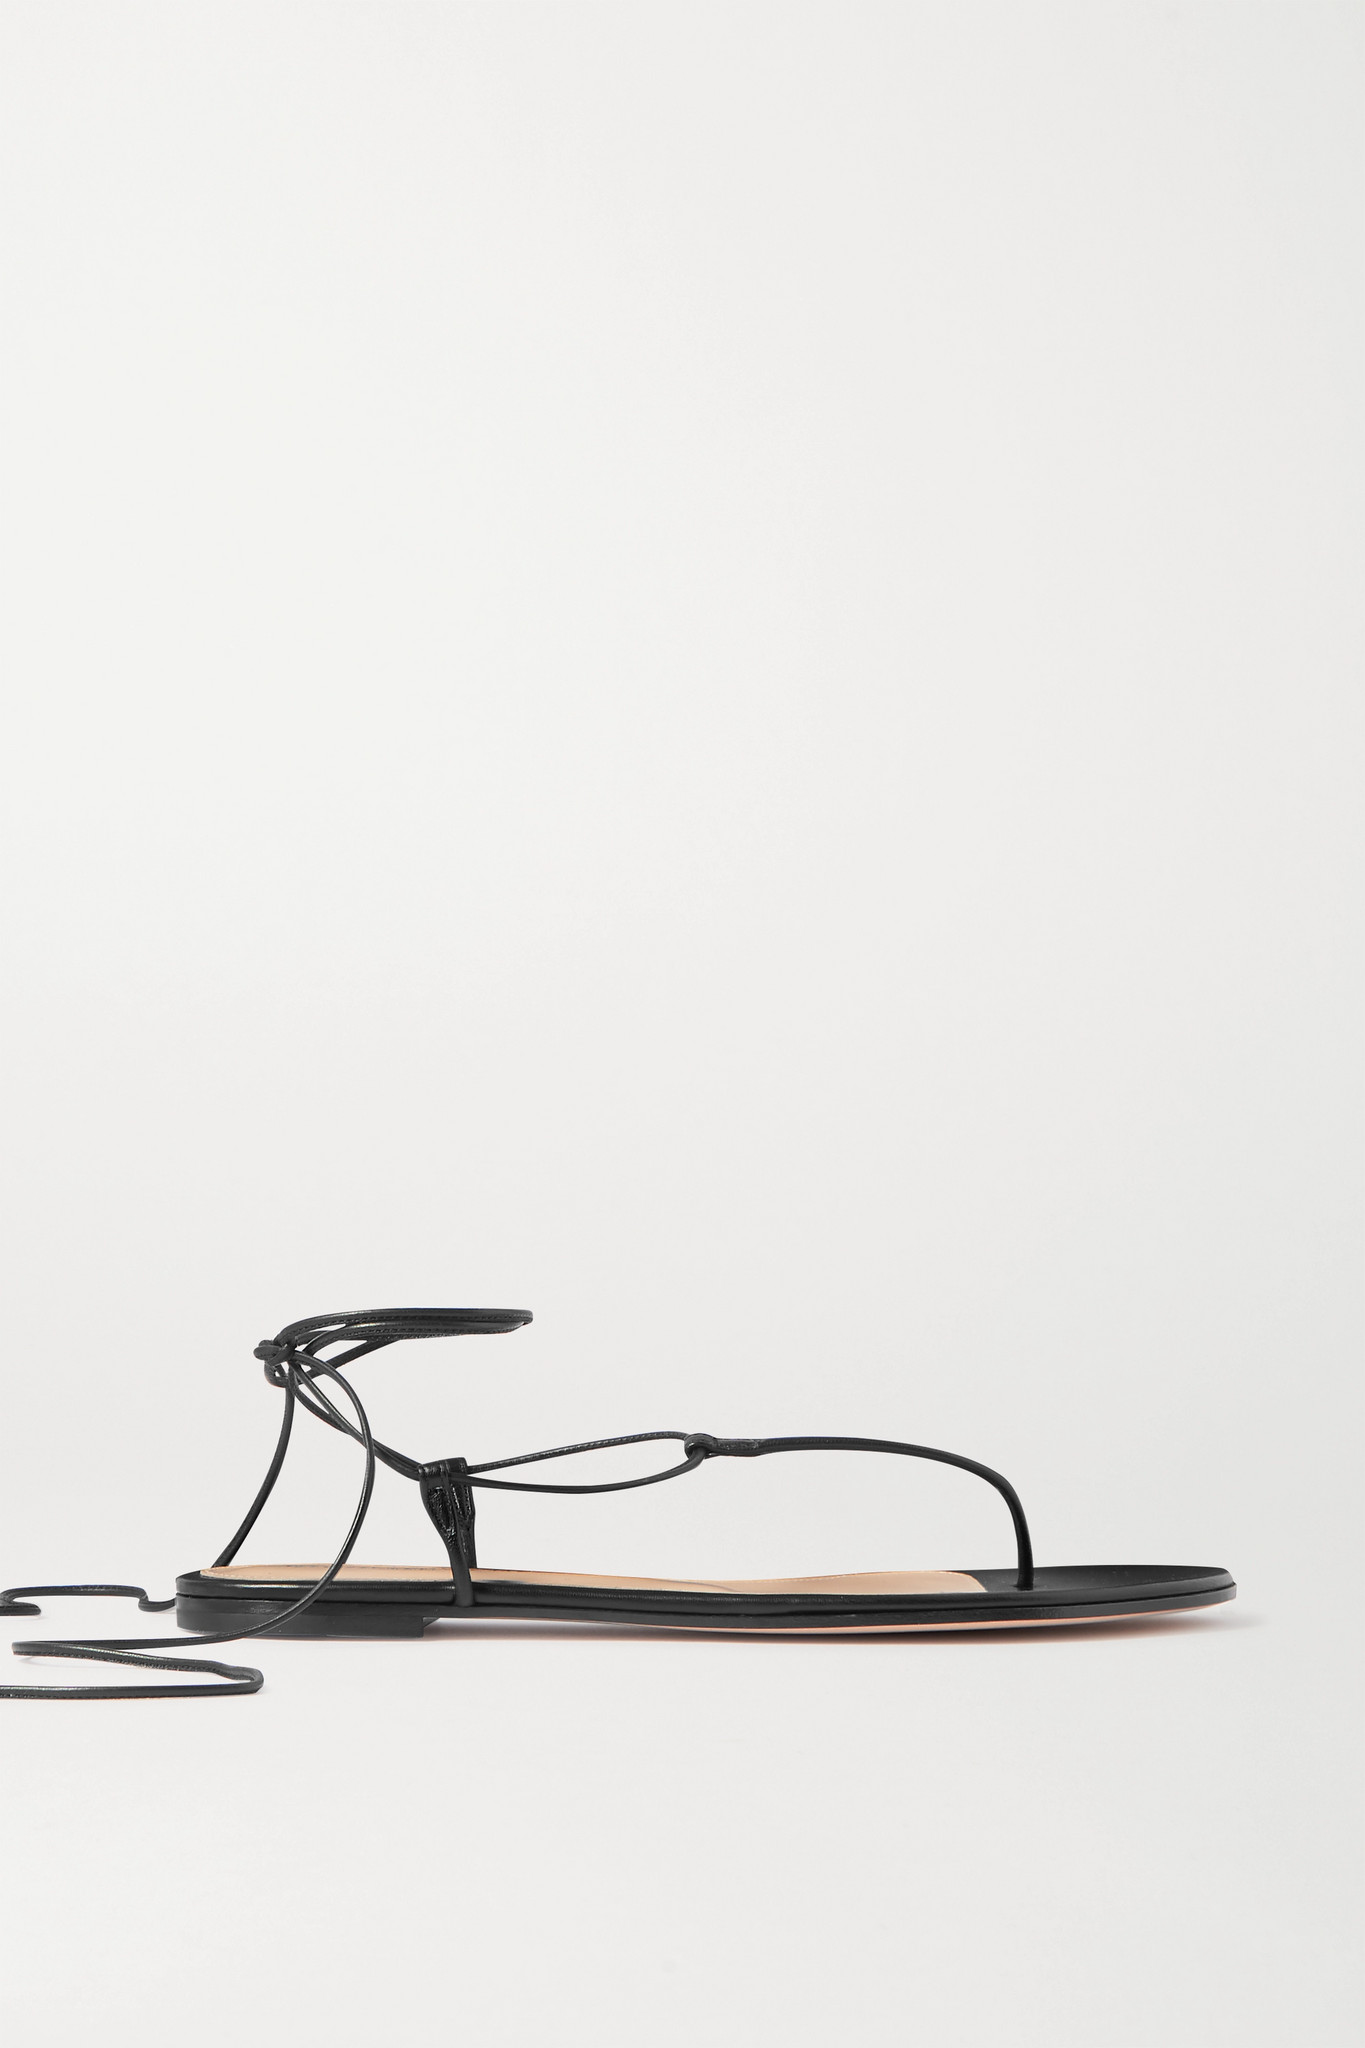 GIANVITO ROSSI - Leather Sandals - Black - IT38.5